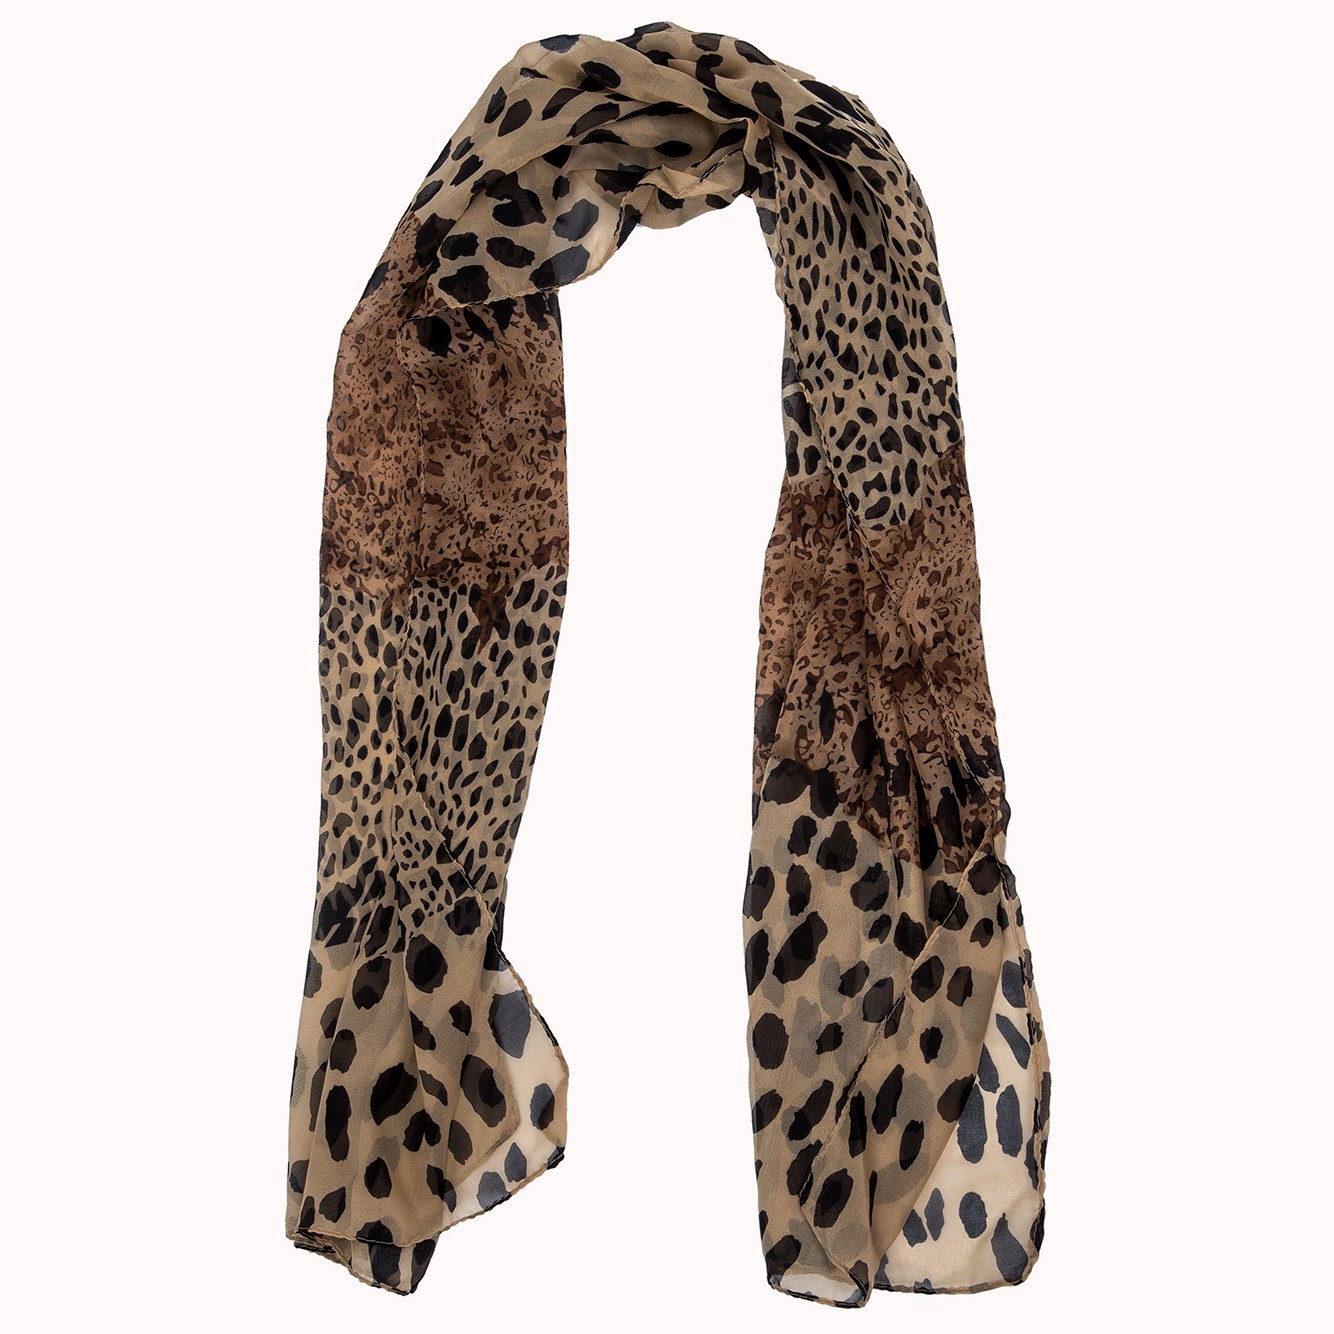 soft wrap shawl animal print leopard scarves stole